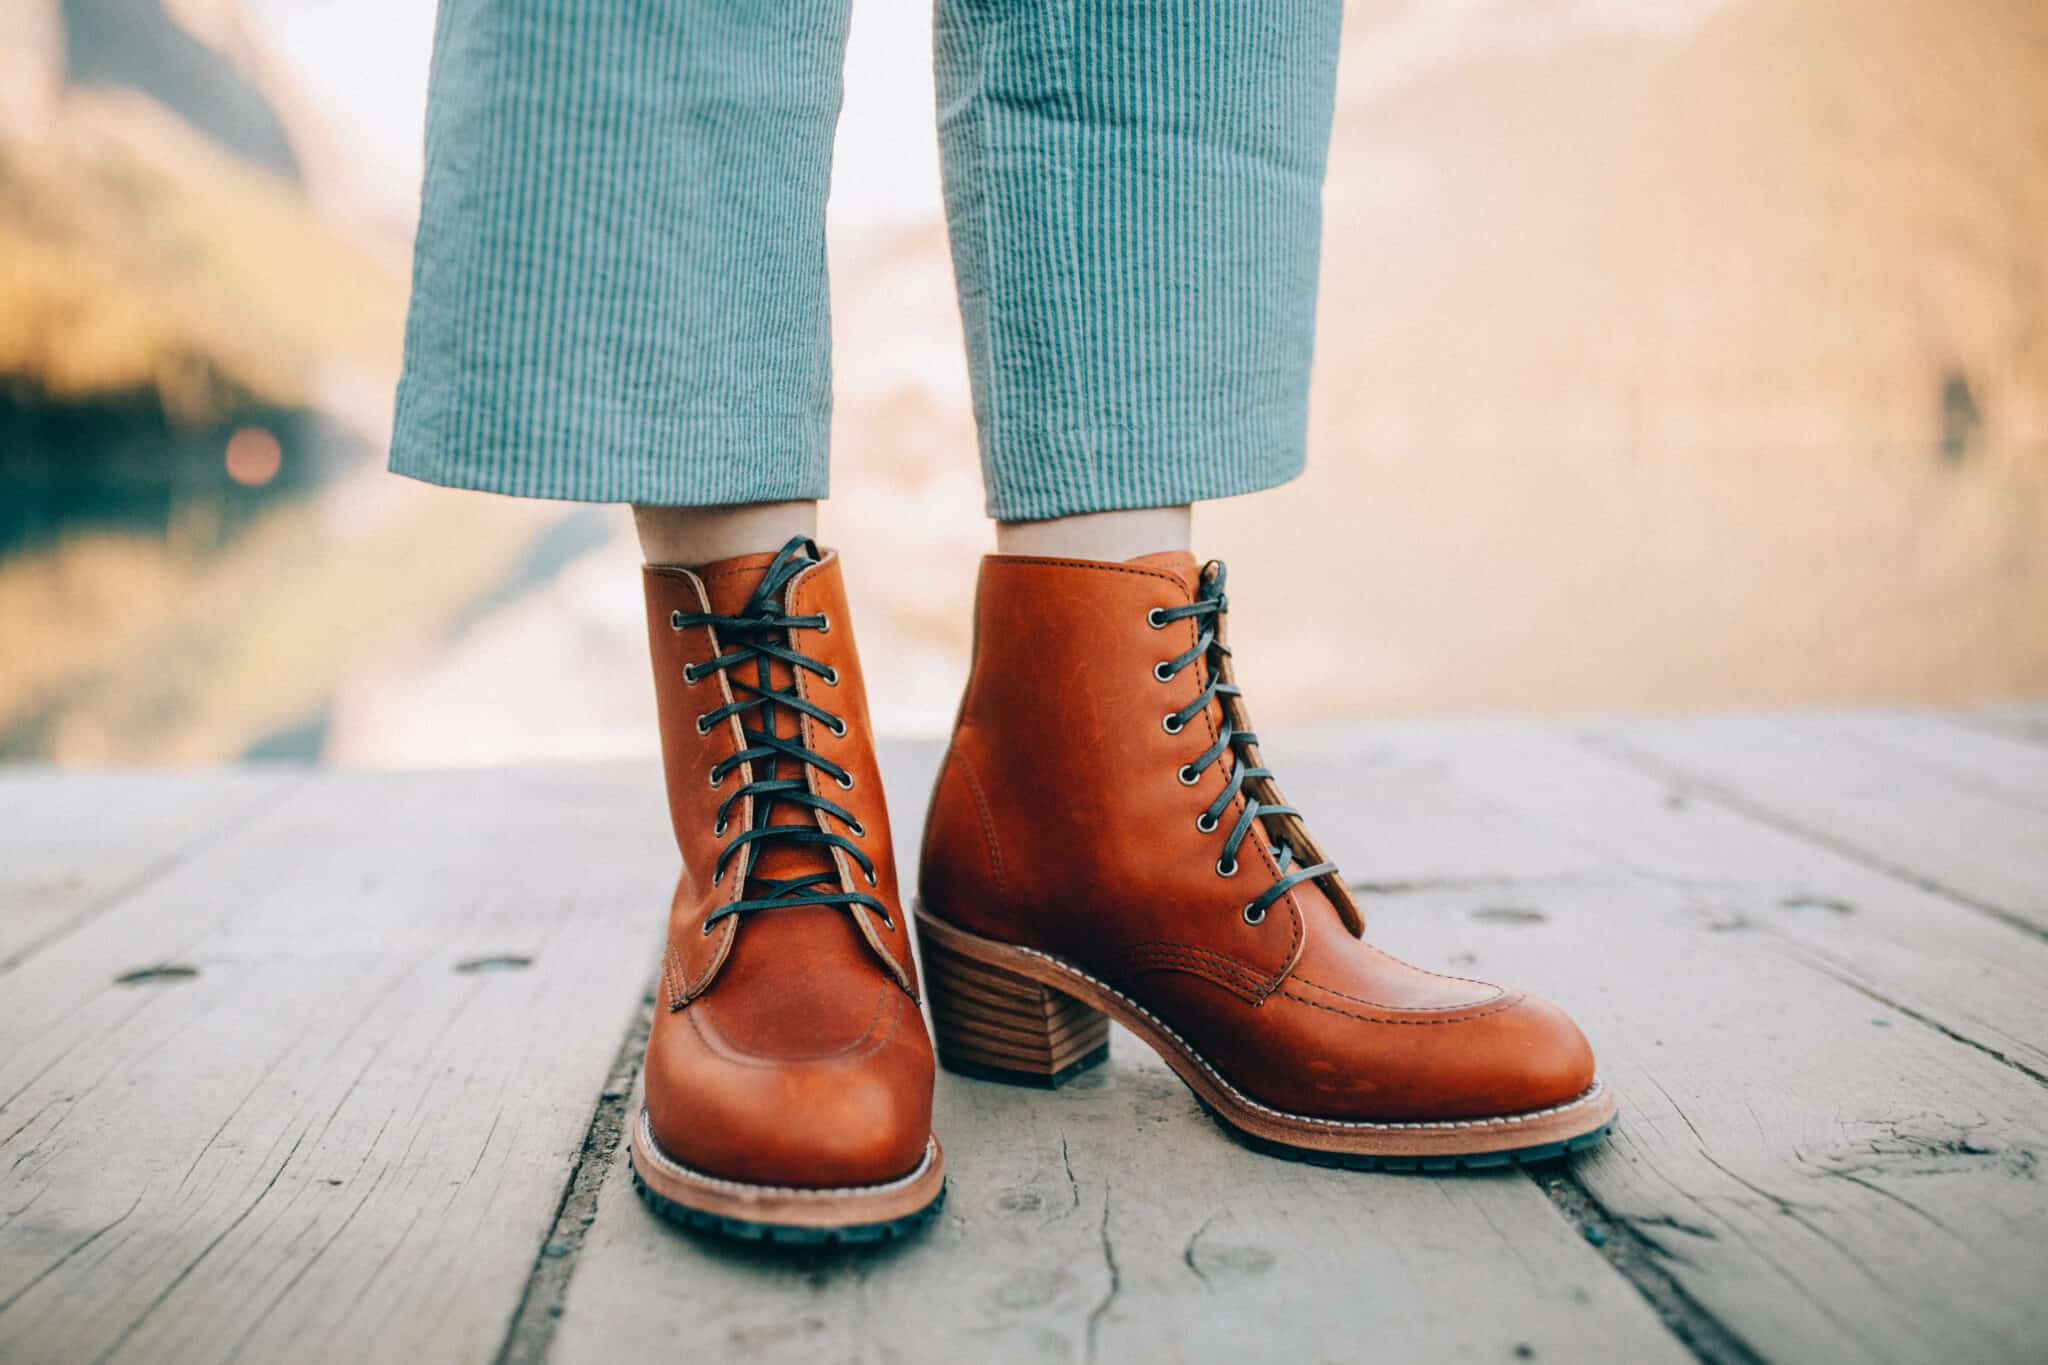 Things to do in Banff - Red Wing Boots